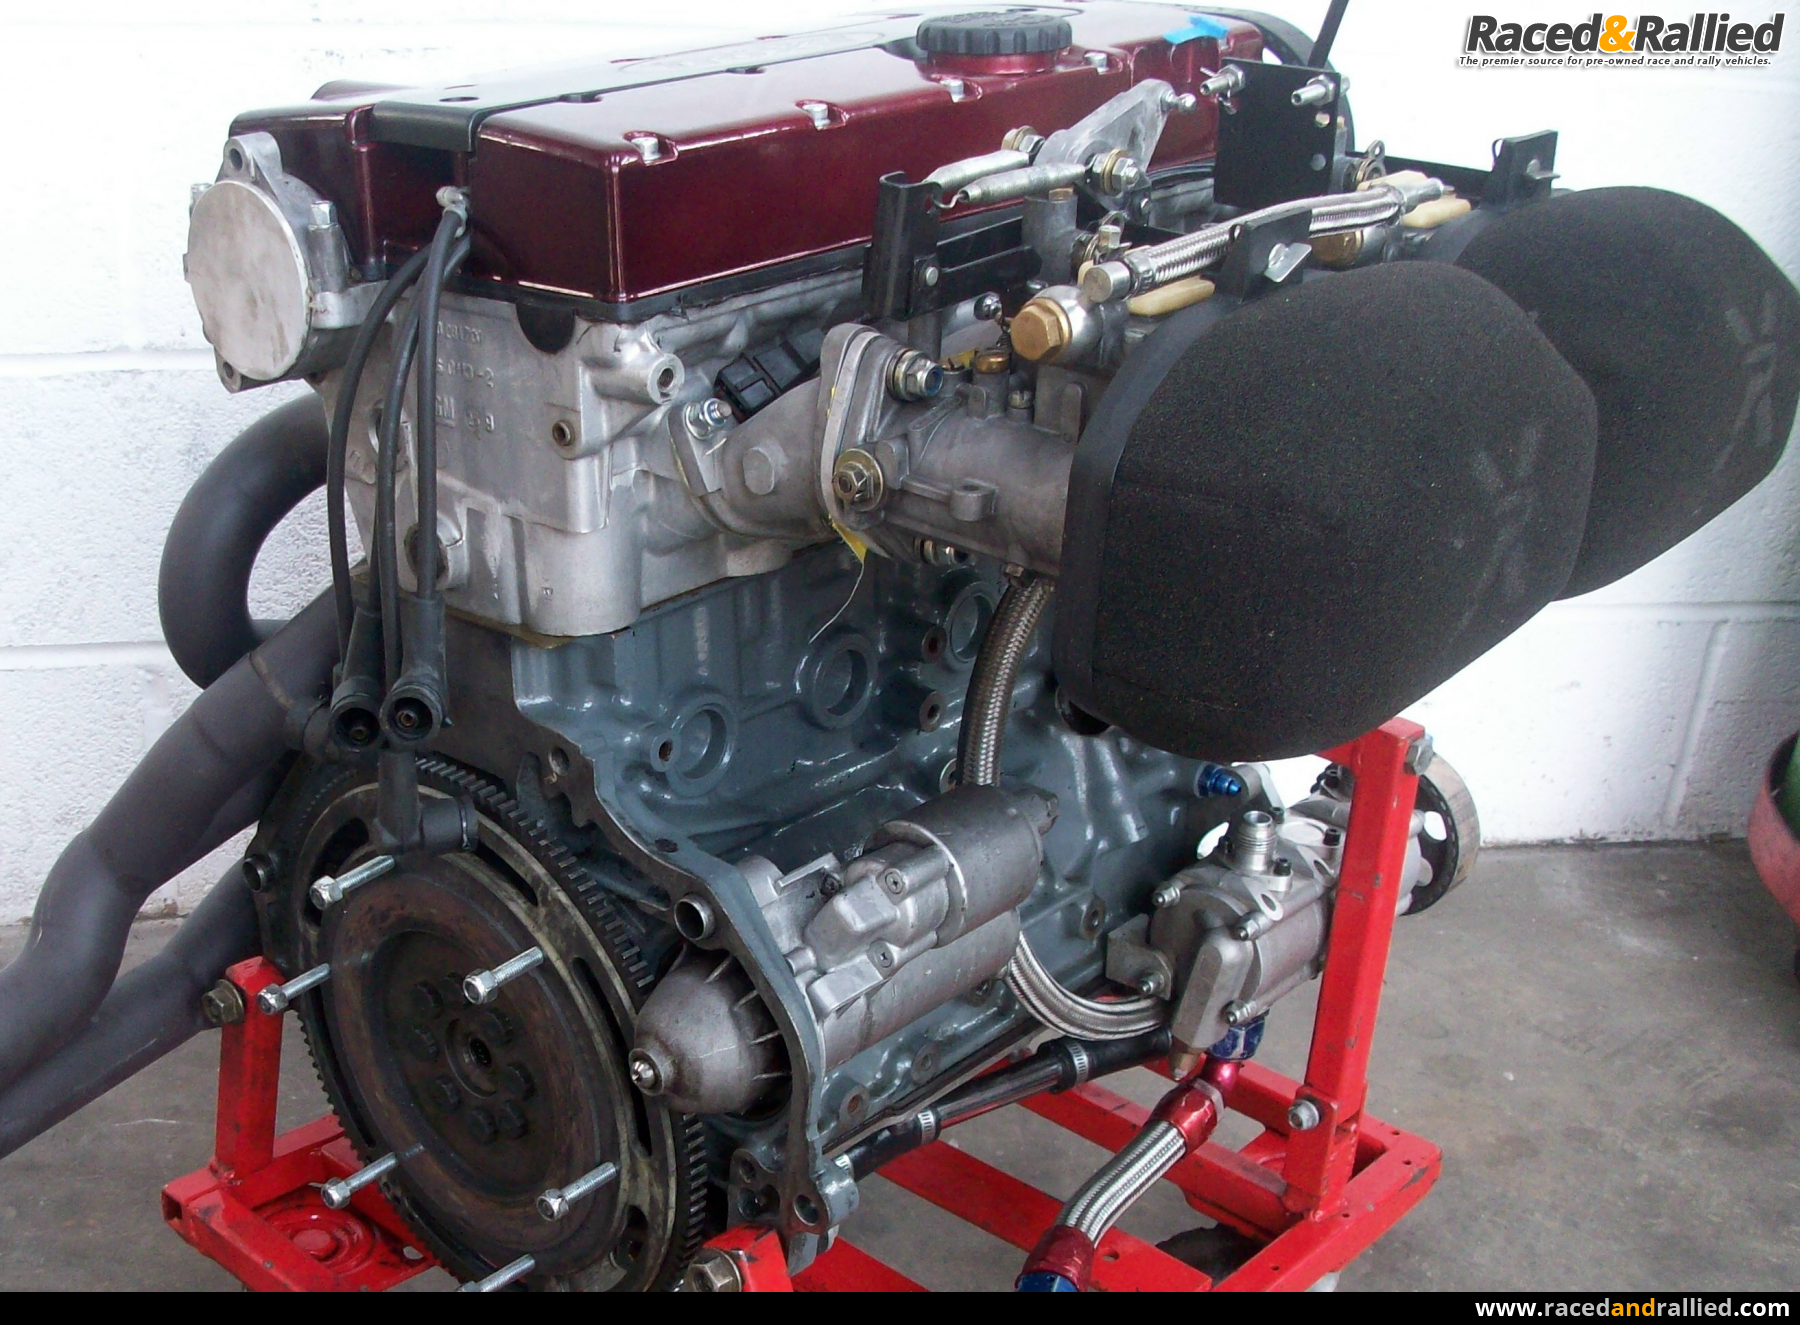 Vauxhall redtop full race engine | Race Car Parts for sale at Raced